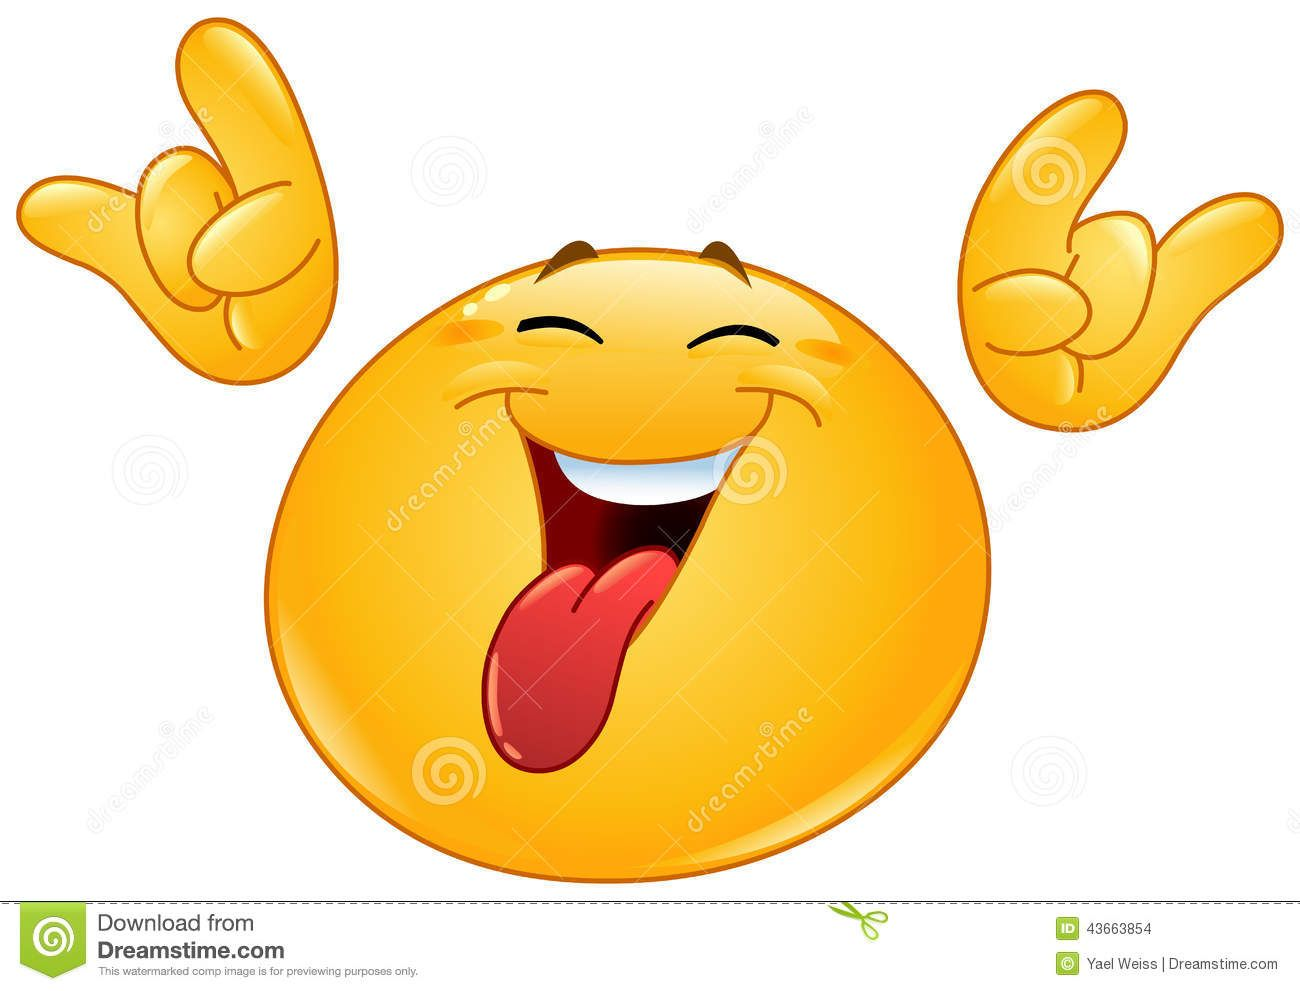 There i sead it emoticon tongue out showing hock em devils horns explore symbols emoticons emoji symbols and more biocorpaavc